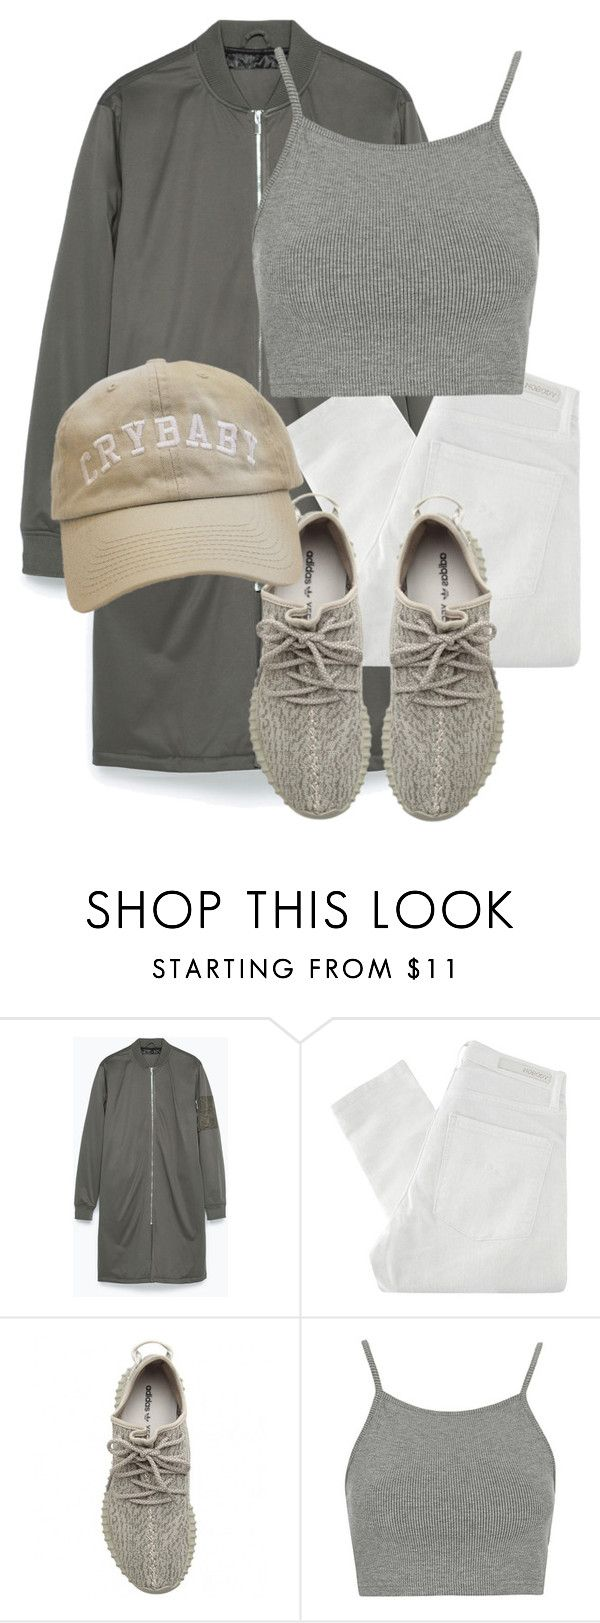 """Untitled #3220"" by xirix ❤ liked on Polyvore featuring Zara, Nobody Denim, adidas Originals, Topshop, women's clothing, women's fashion, women, female, woman and misses"